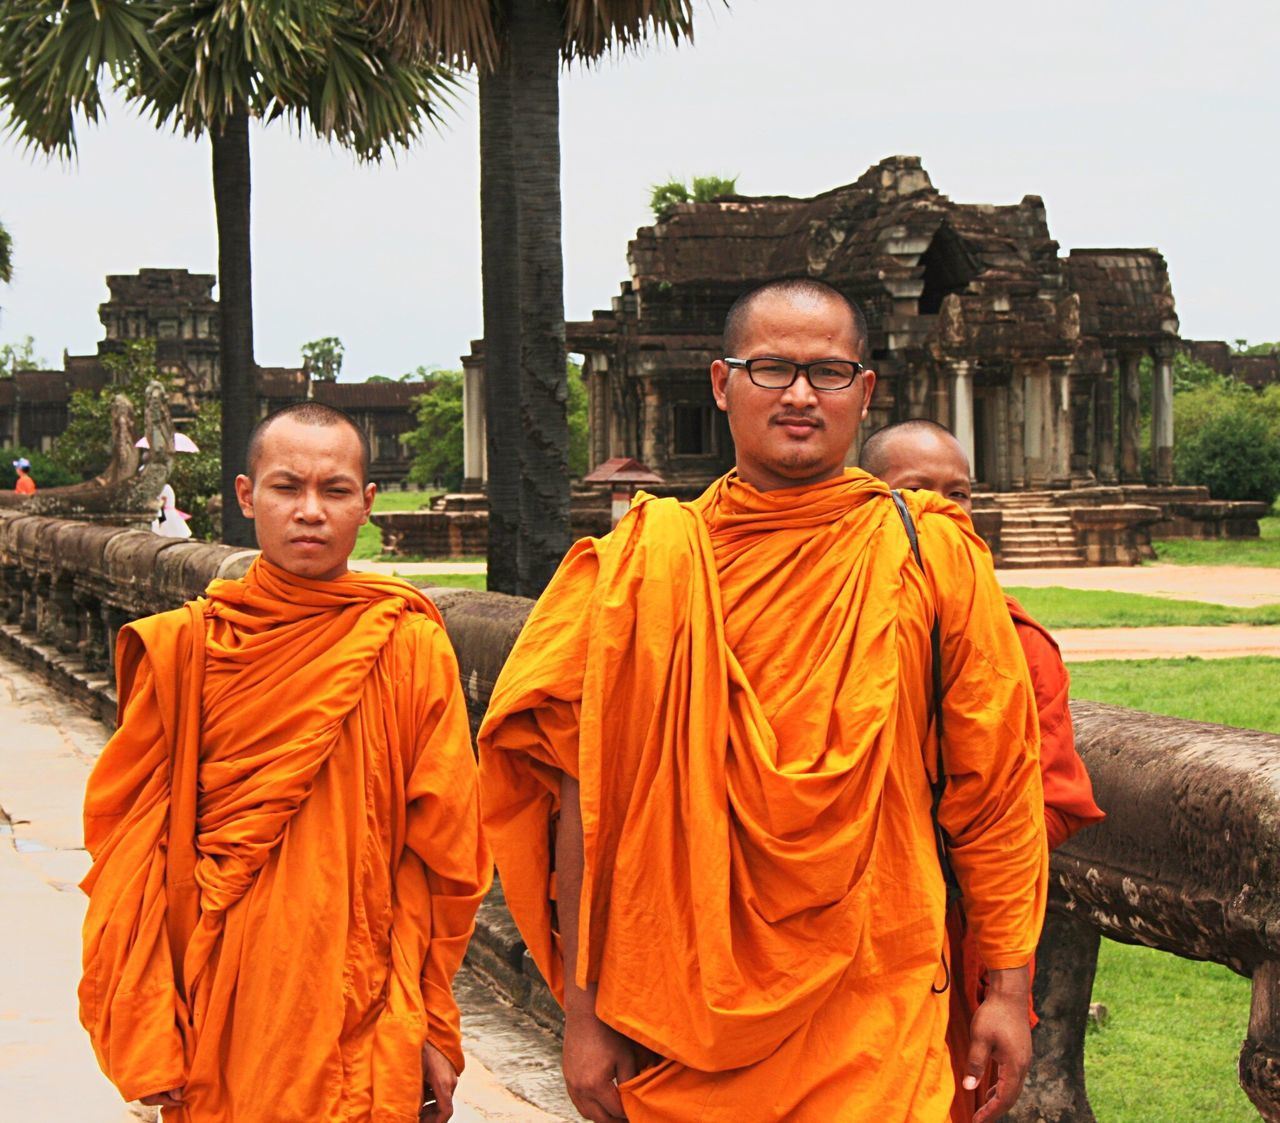 Two People Only Men Portrait Religion Adults Only Outdoors Adult Eyeglasses  People Togetherness Day Buddhism Buddhist Temple Monks EyeEmNewHere